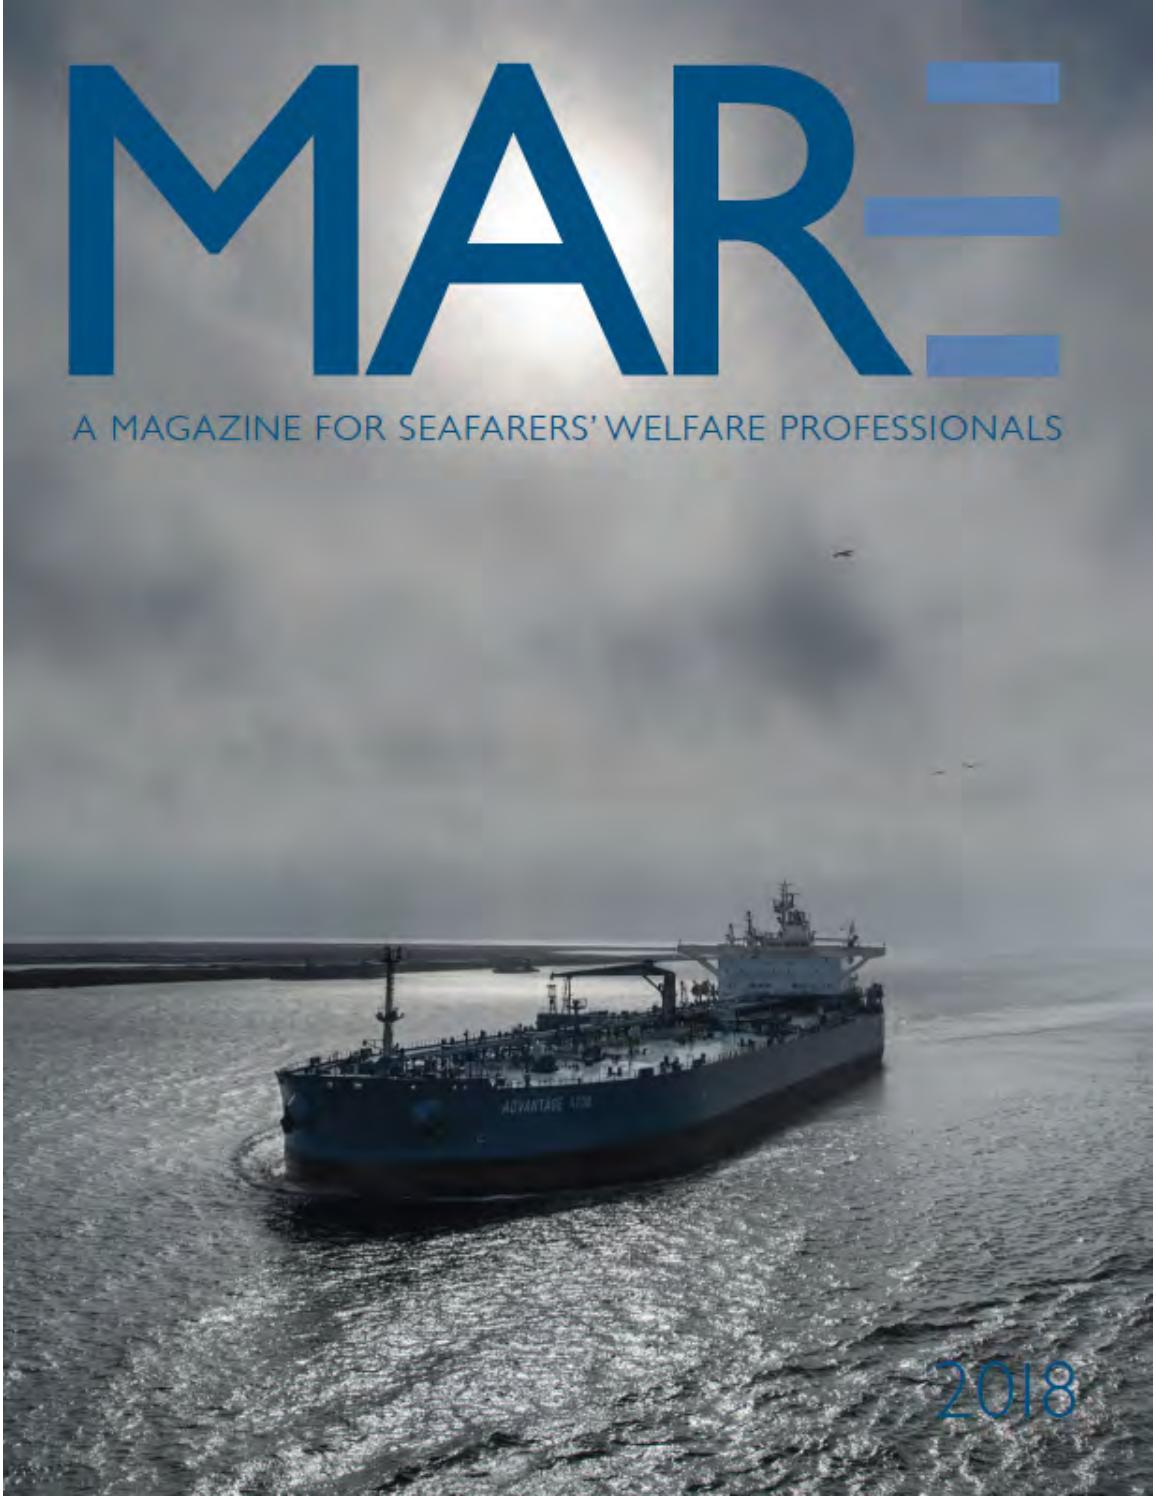 The Mare Report A Magazine For Seafarers Welfare Professionals Sailing Ship Diagram Power Mobydick Online Annotation 2018 By Namma Issuu